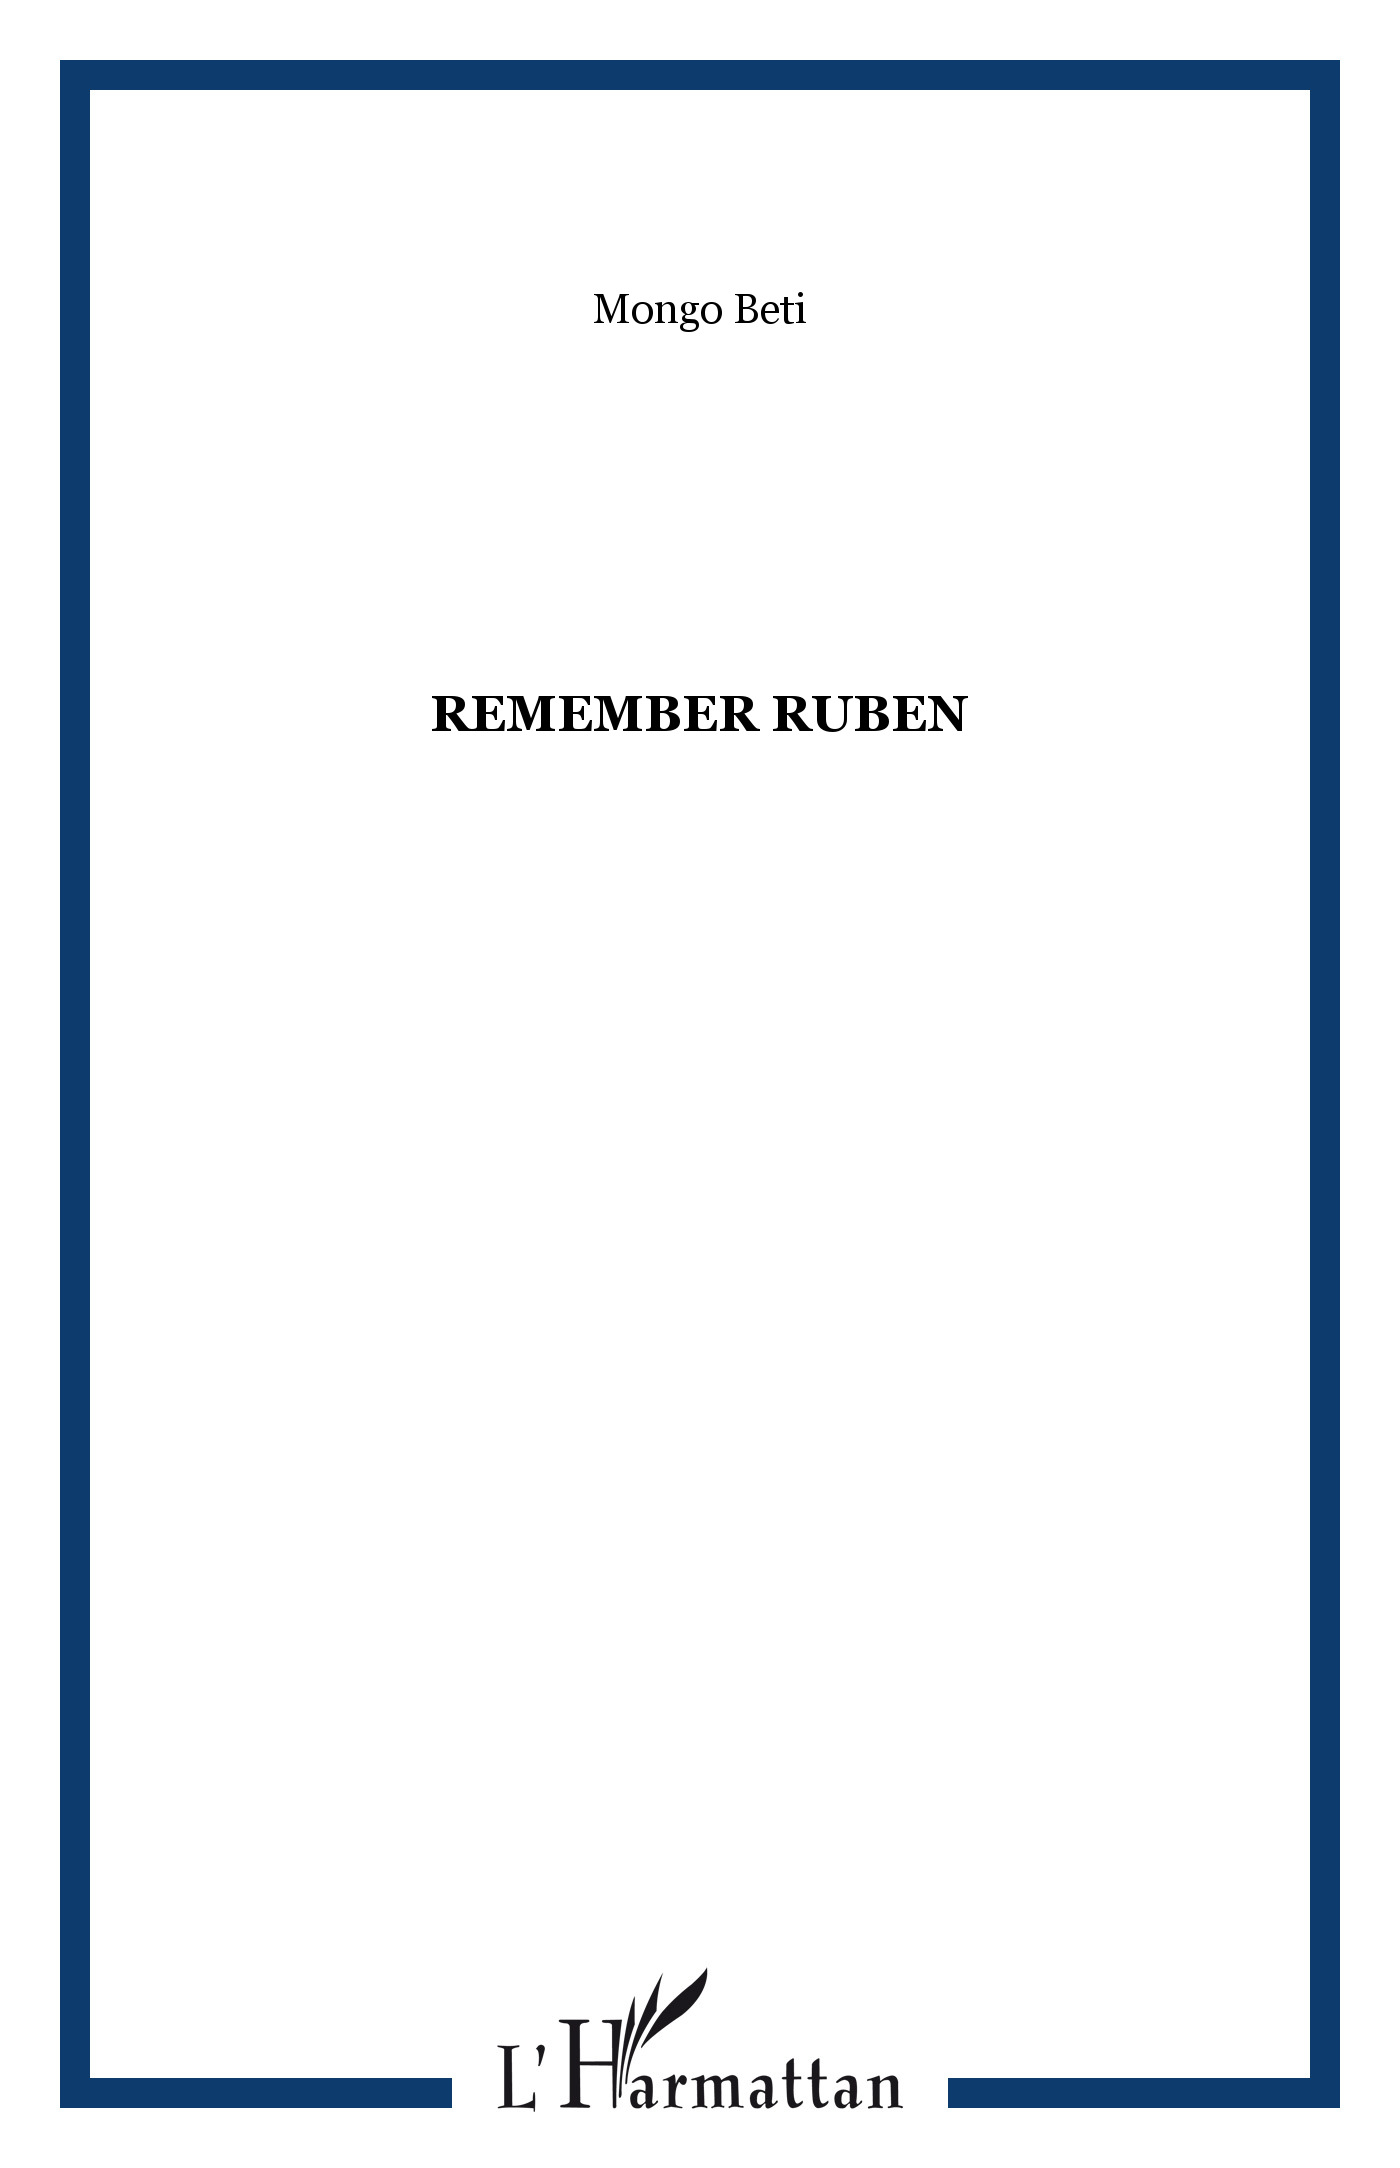 Remember Ruben, 1974